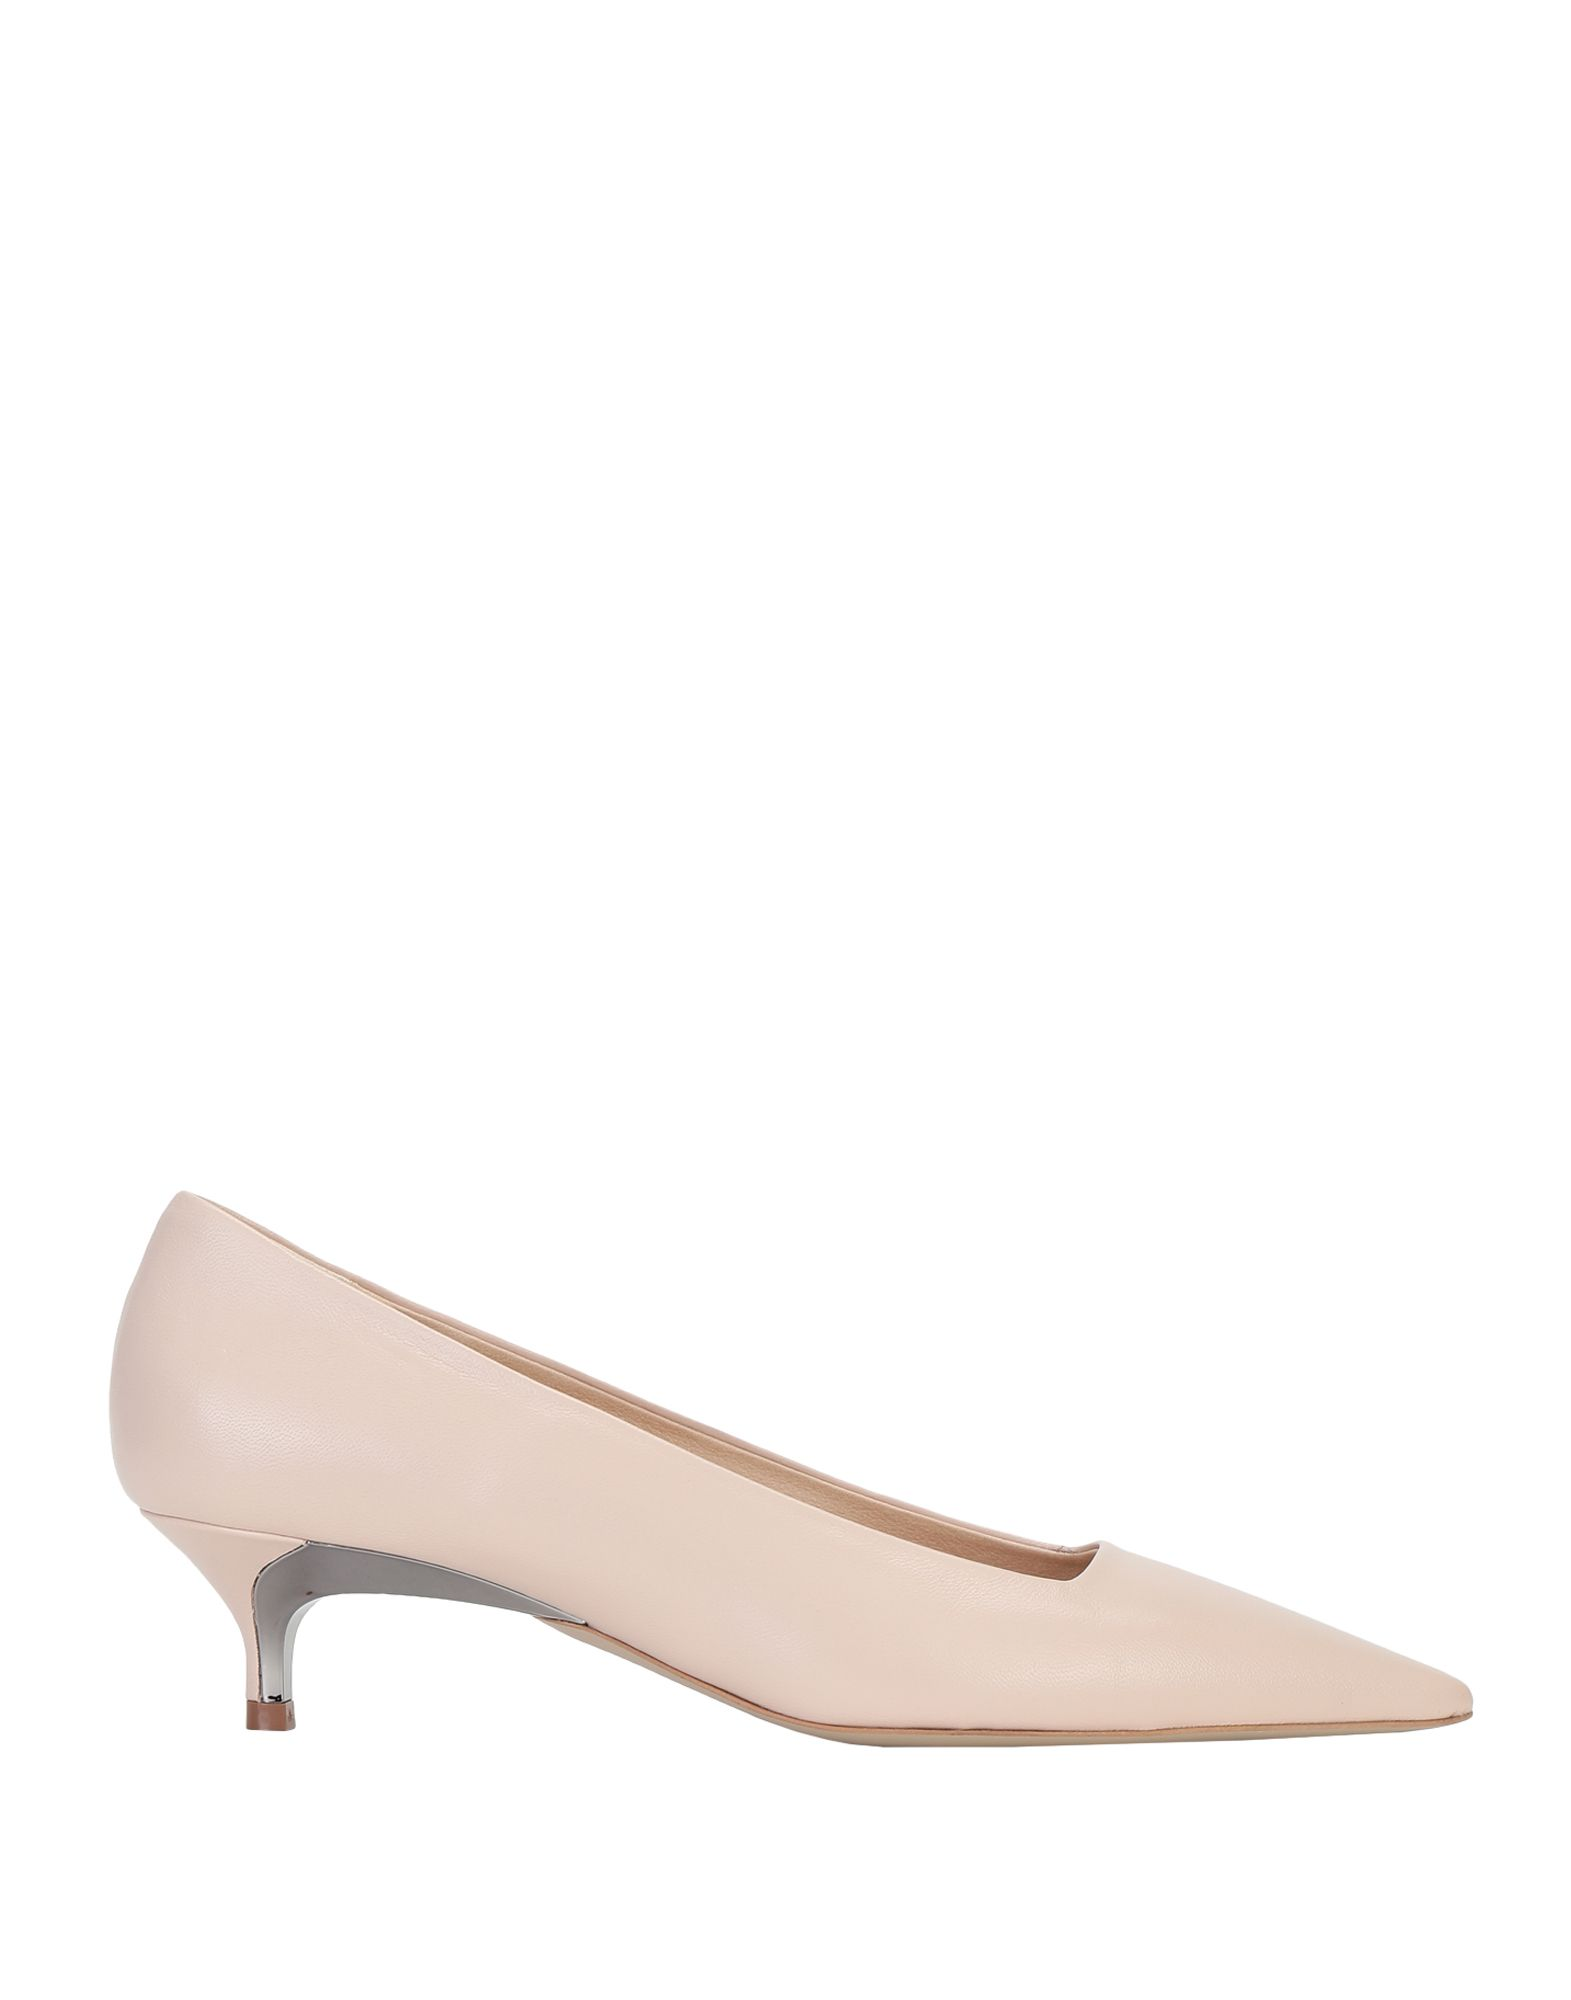 FURLA Pumps. no appliqués, solid color, narrow toeline, spike heel, leather lining, rubber sole, contains non-textile parts of animal origin. Soft Leather